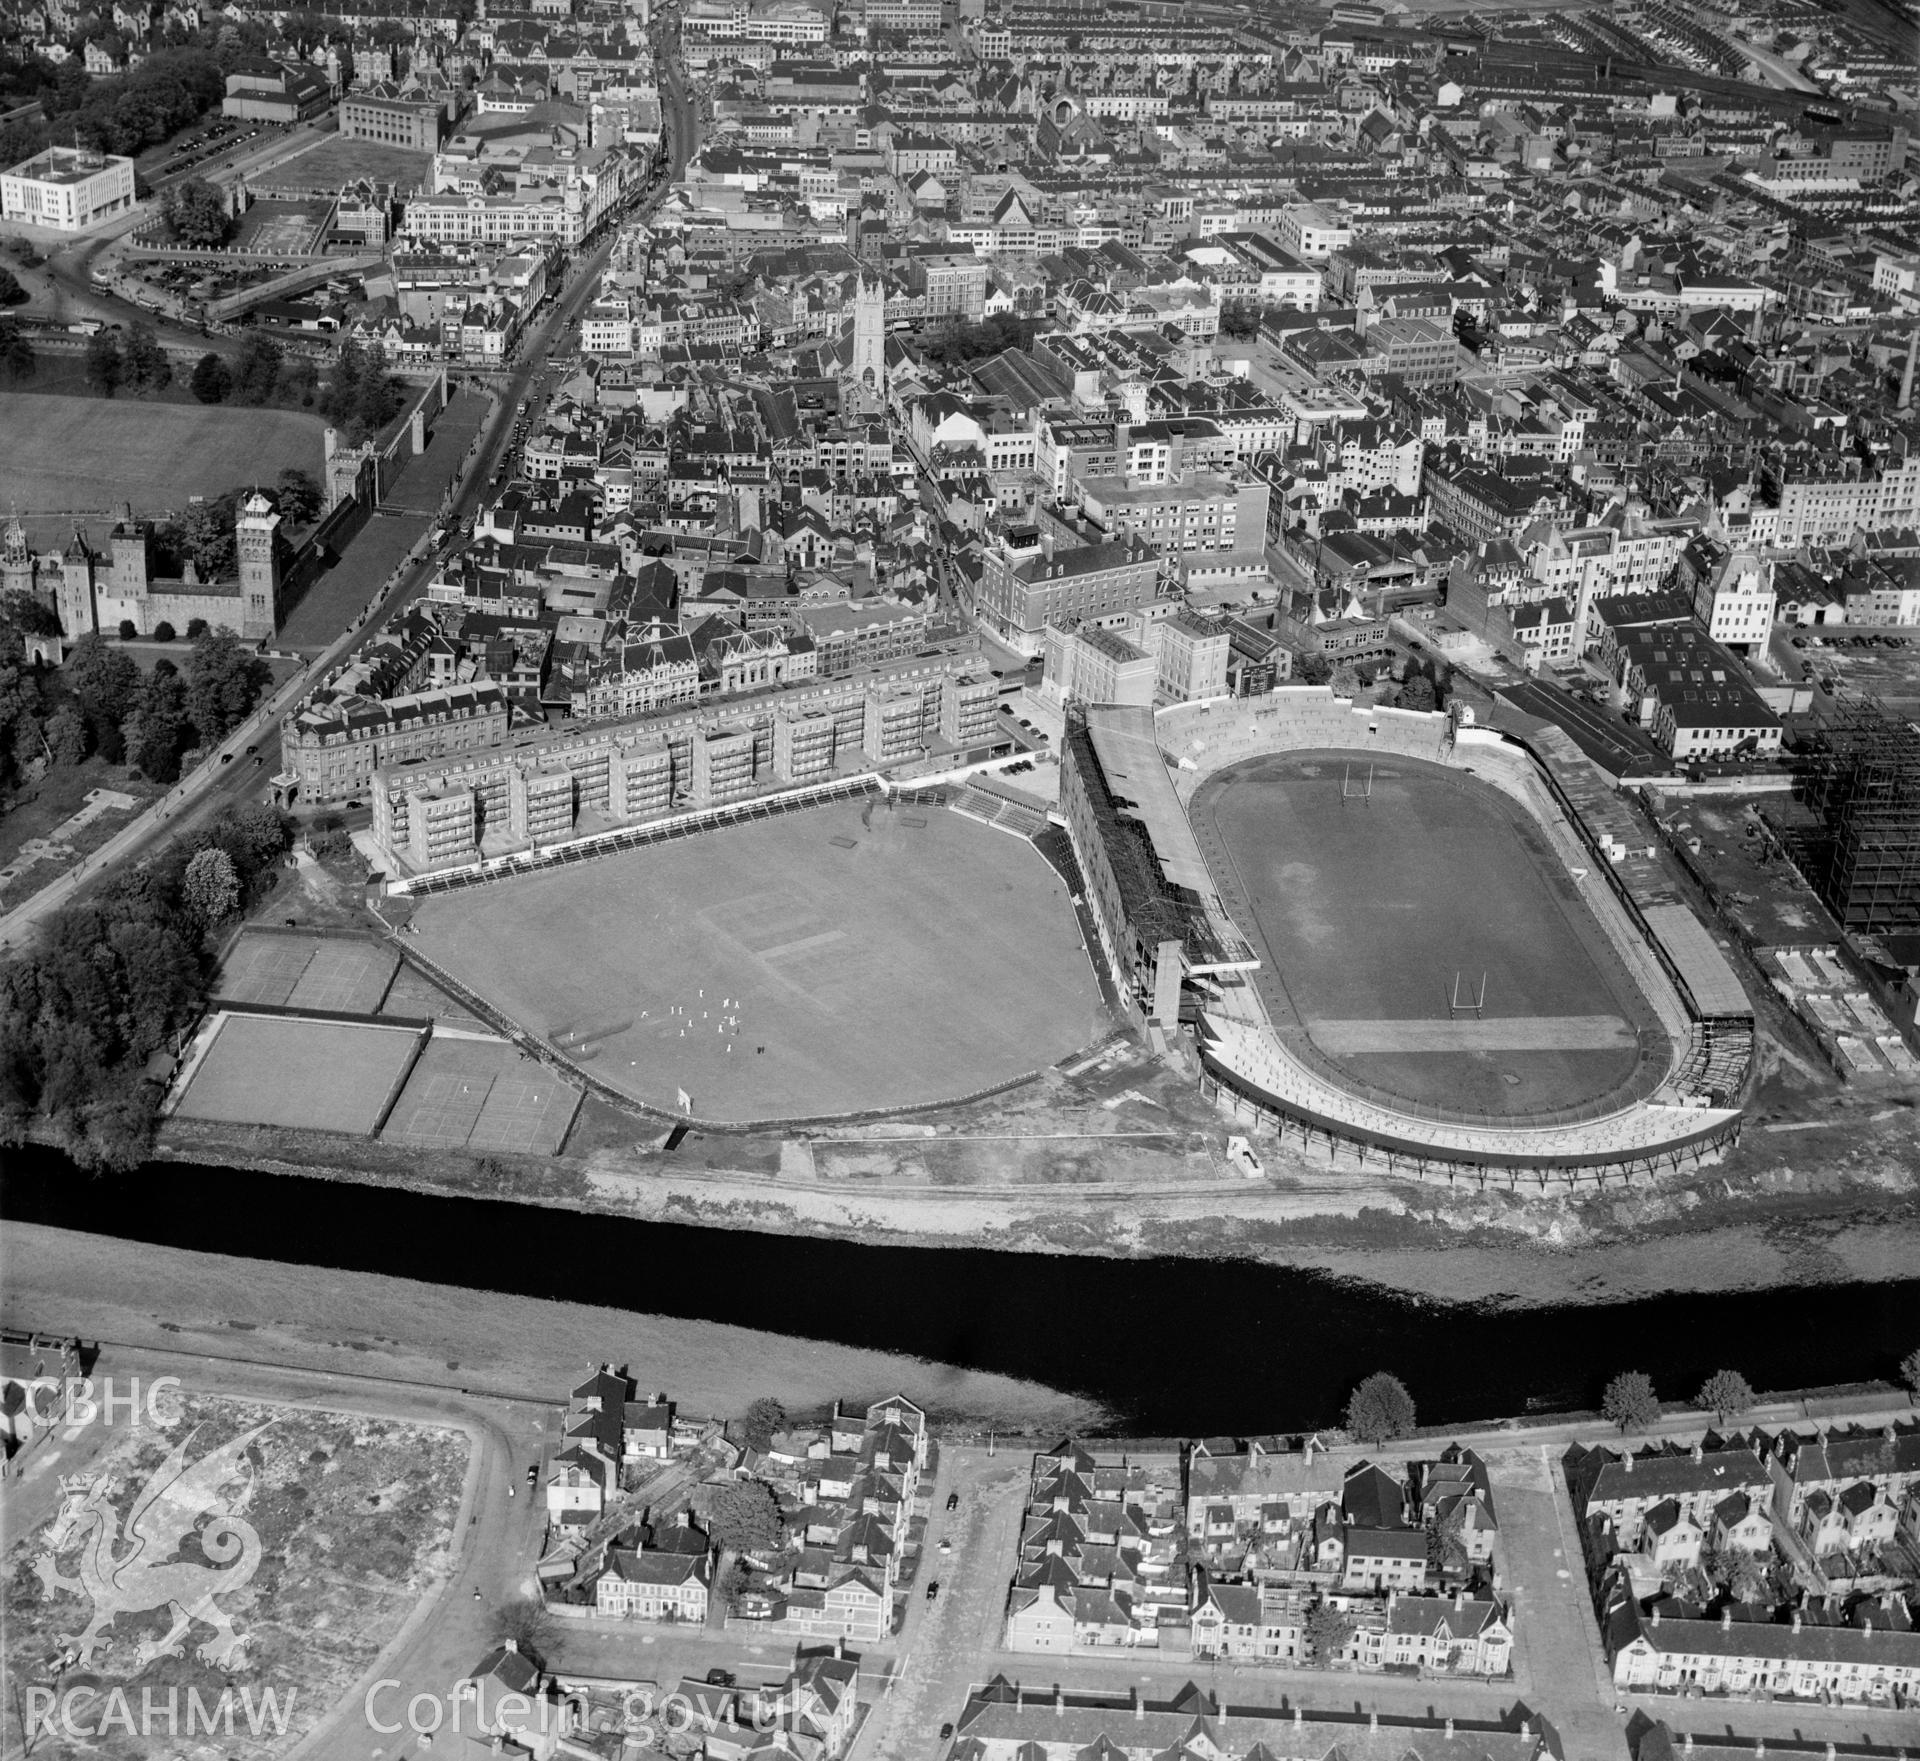 Digital copy of a black and white, oblique aerial photograph of Cardiff Arms Park. The photograph shows a view from the West showing the new North stand under construction.